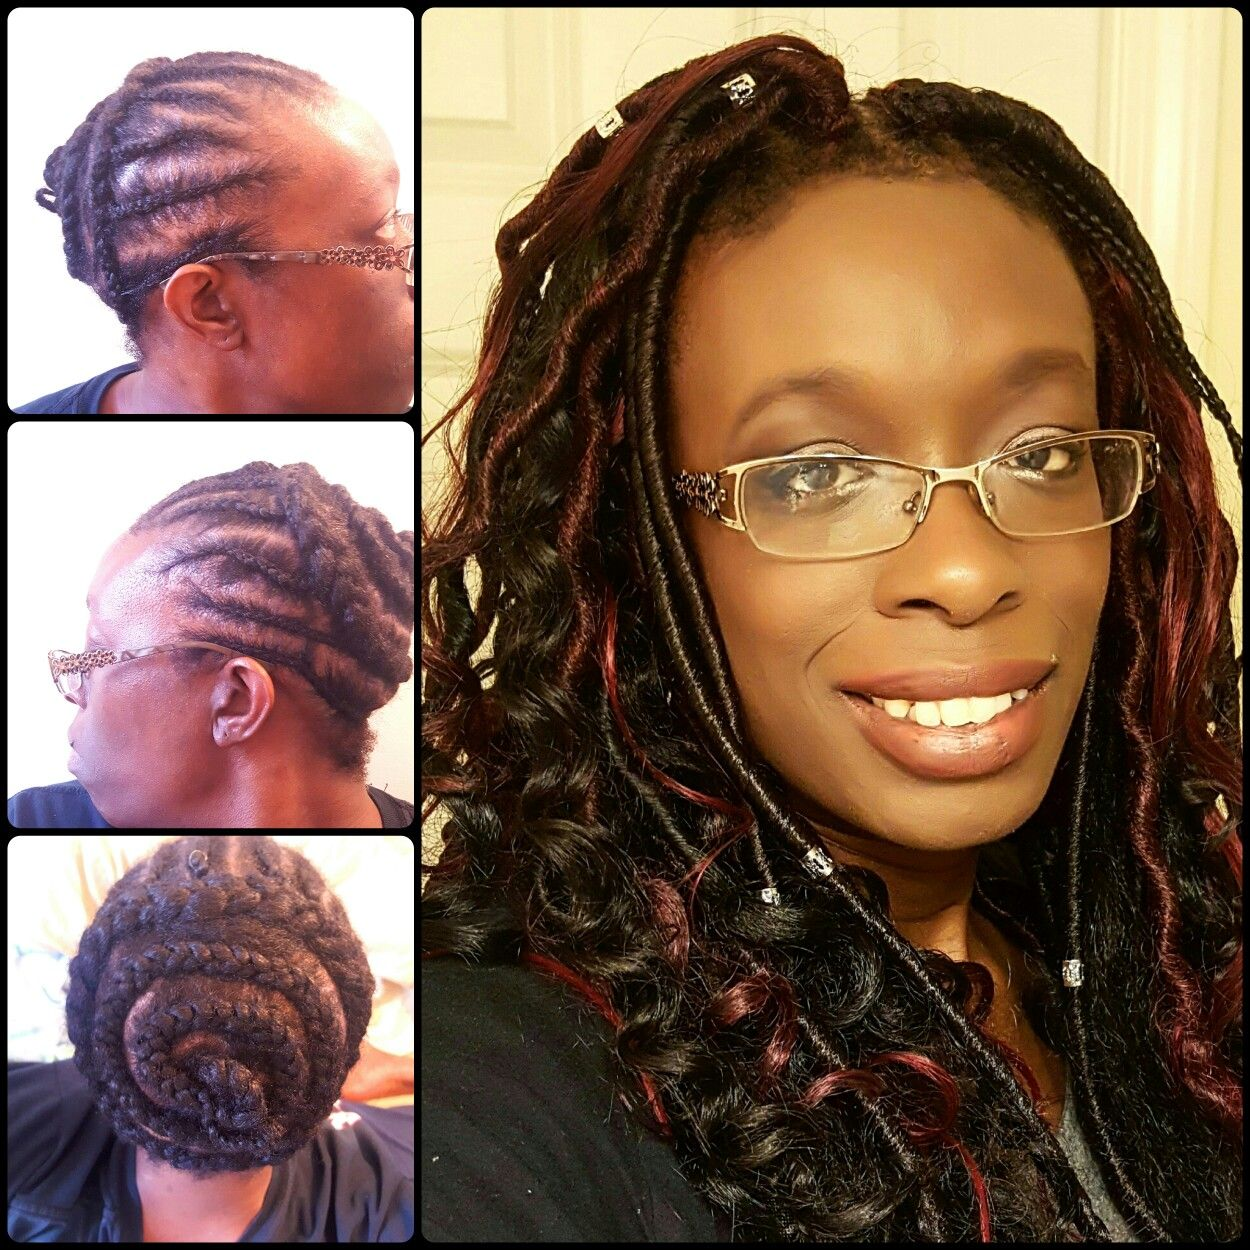 Bohemian Gypsy Hairstyle Done Using Faux Locs Goddess Two Different Types Of